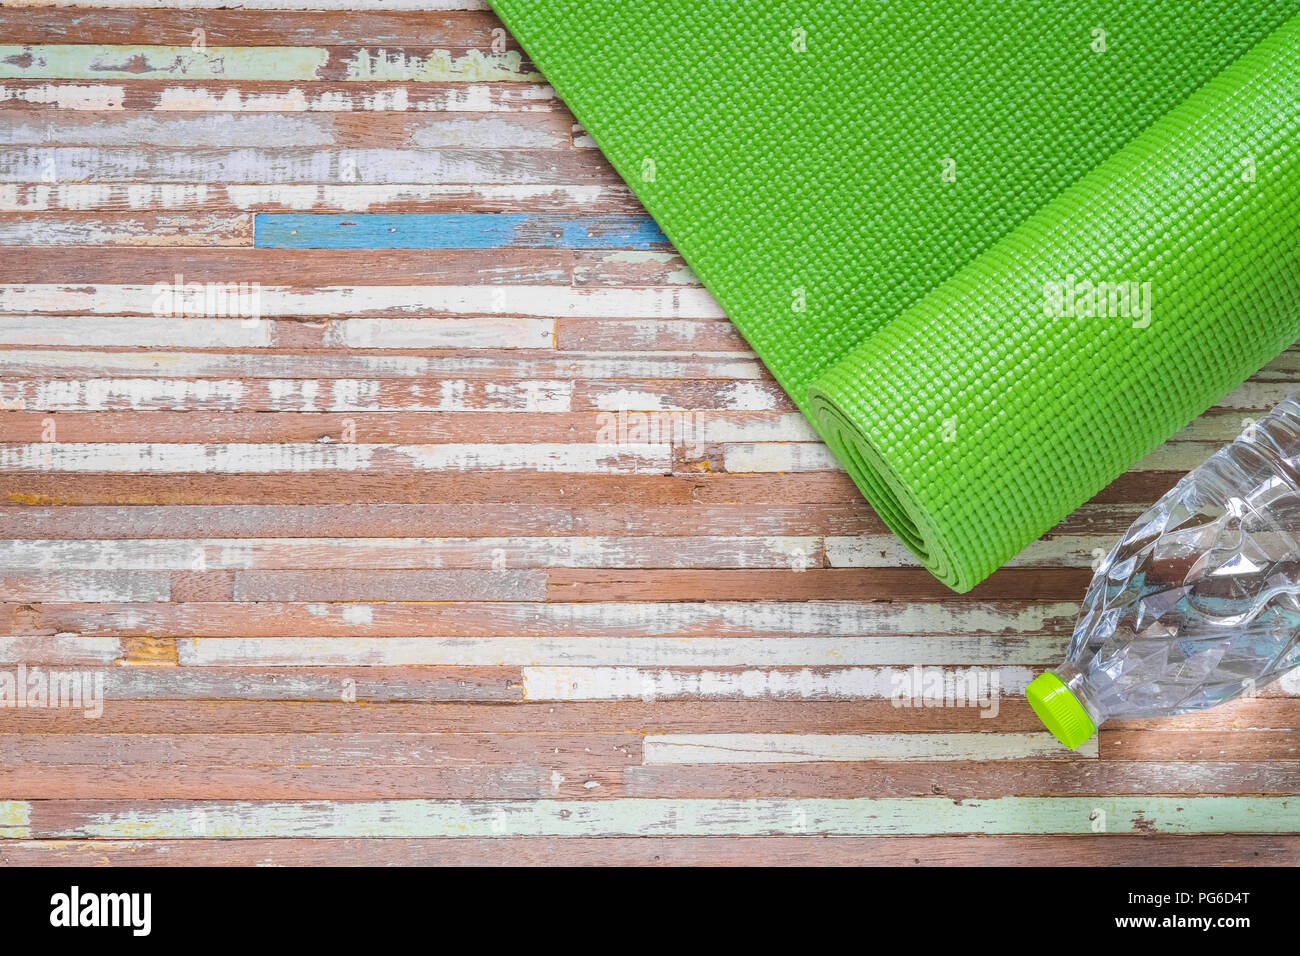 61f7a779d13b1 Green yoga mat on a wooden background with bottle of water, Top View with  copy space. Active healthy lifestyle background concept.